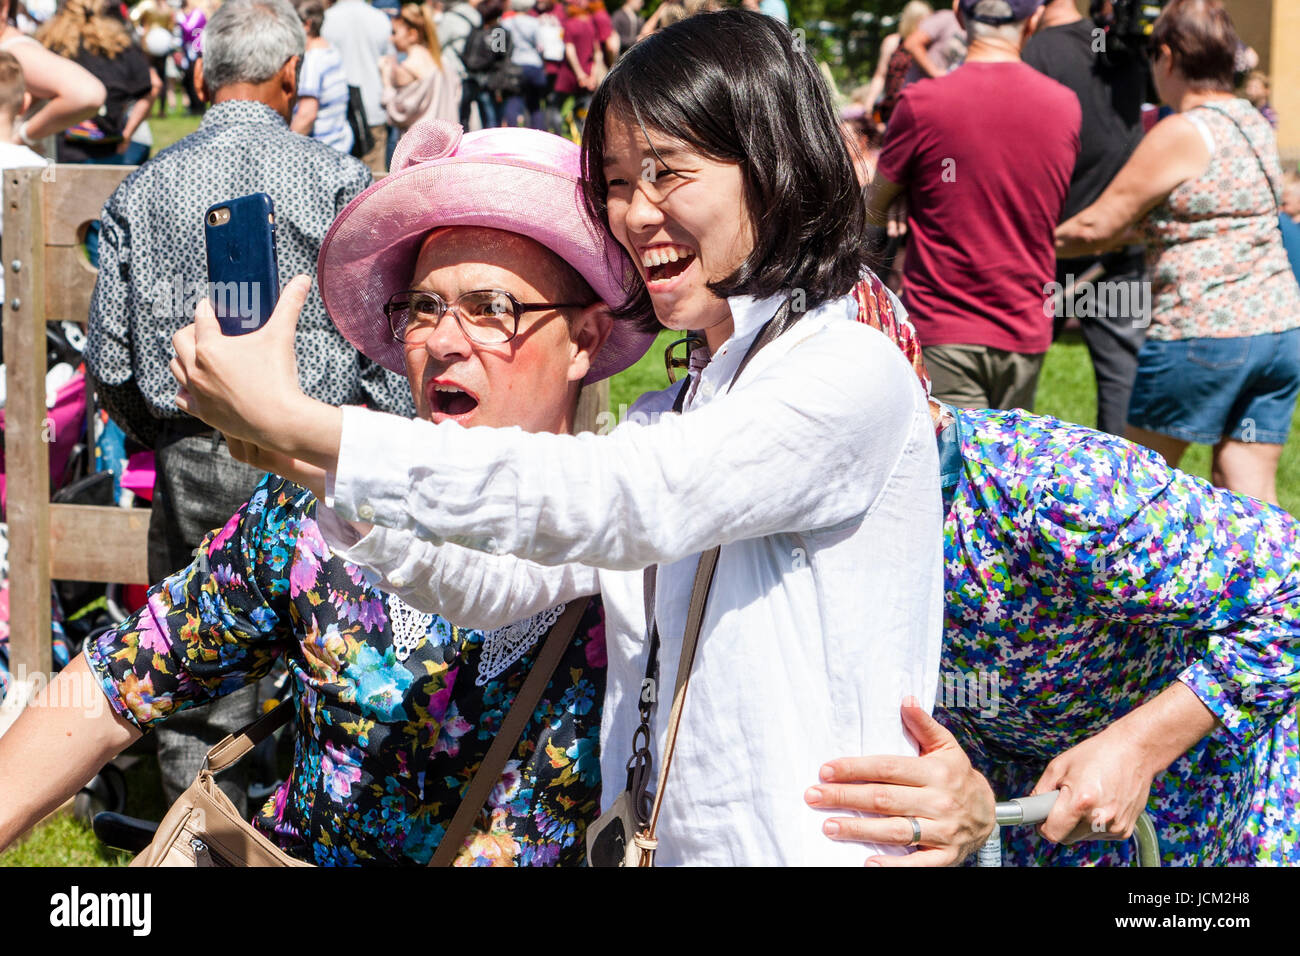 England, Coxheath. World custard pie championships. Laughing Japanese girl taking selfie with one of the Grannie's - Stock Image